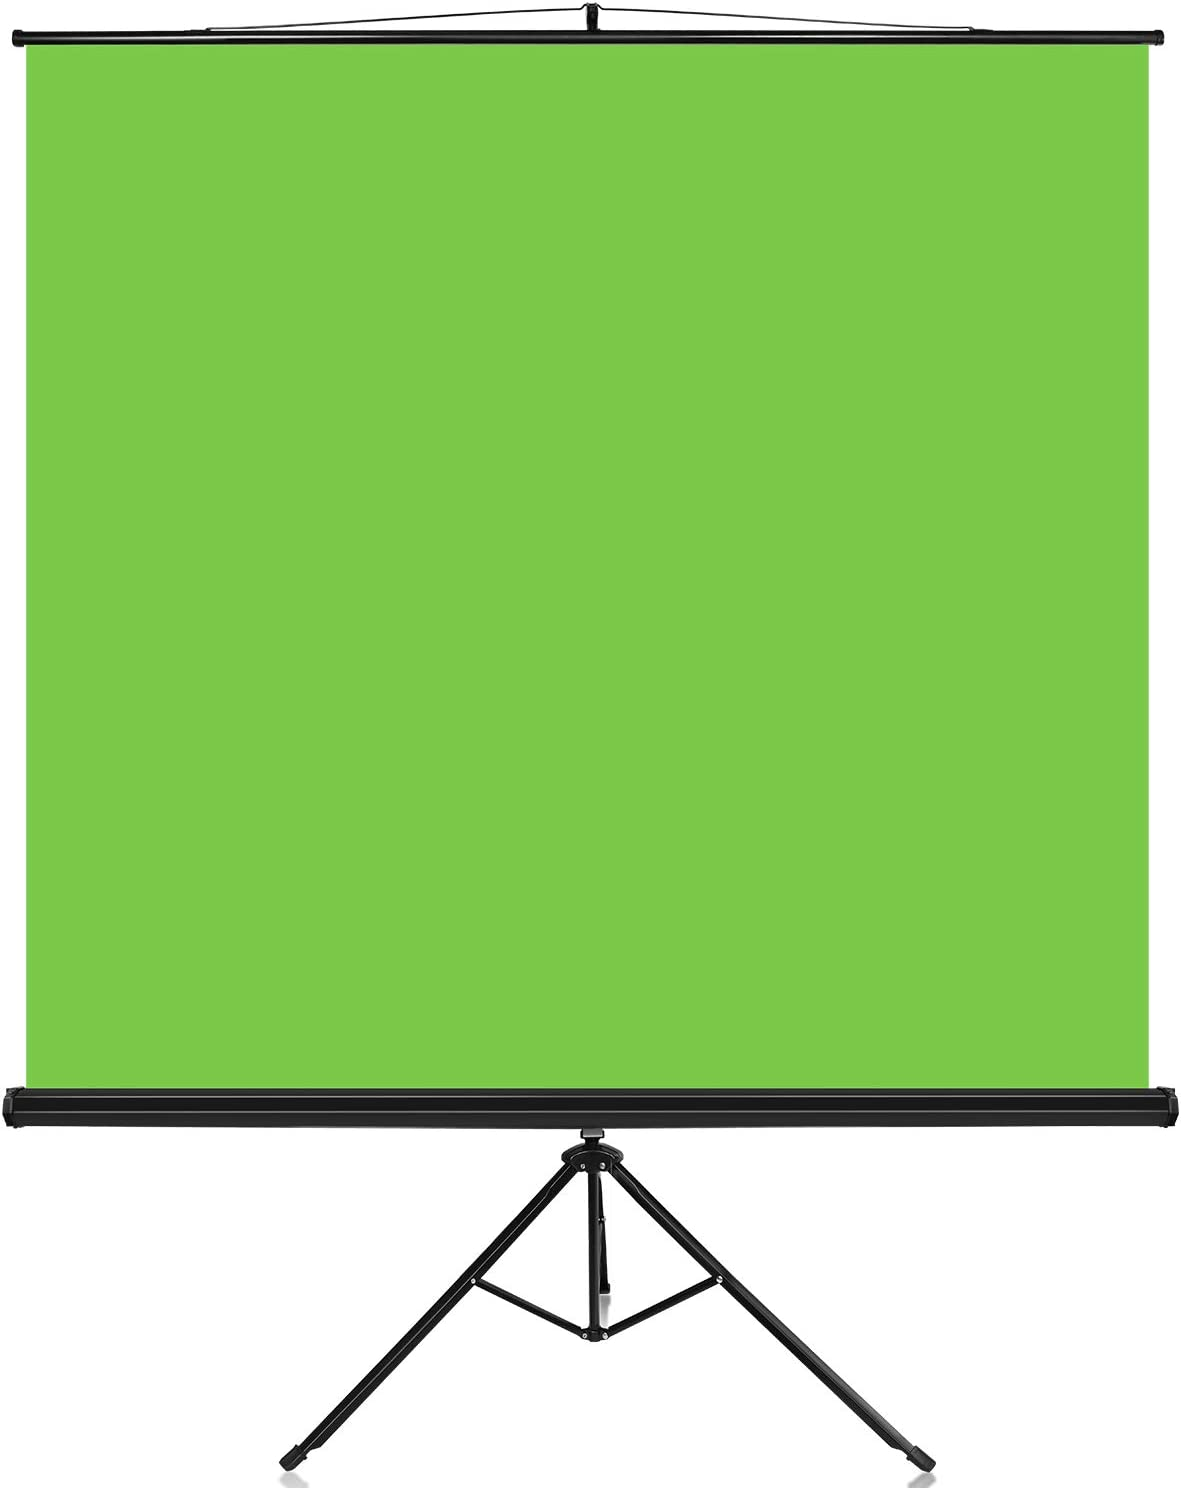 Yesker Green Screen Photo Video Studio Backdrop Mounts On Tripod Portable Anti-wrinkle Collapsible Chroma Key Panel Background with Aluminum Alloy Stand Quick Assembly for Video Studio Shoot Game Live